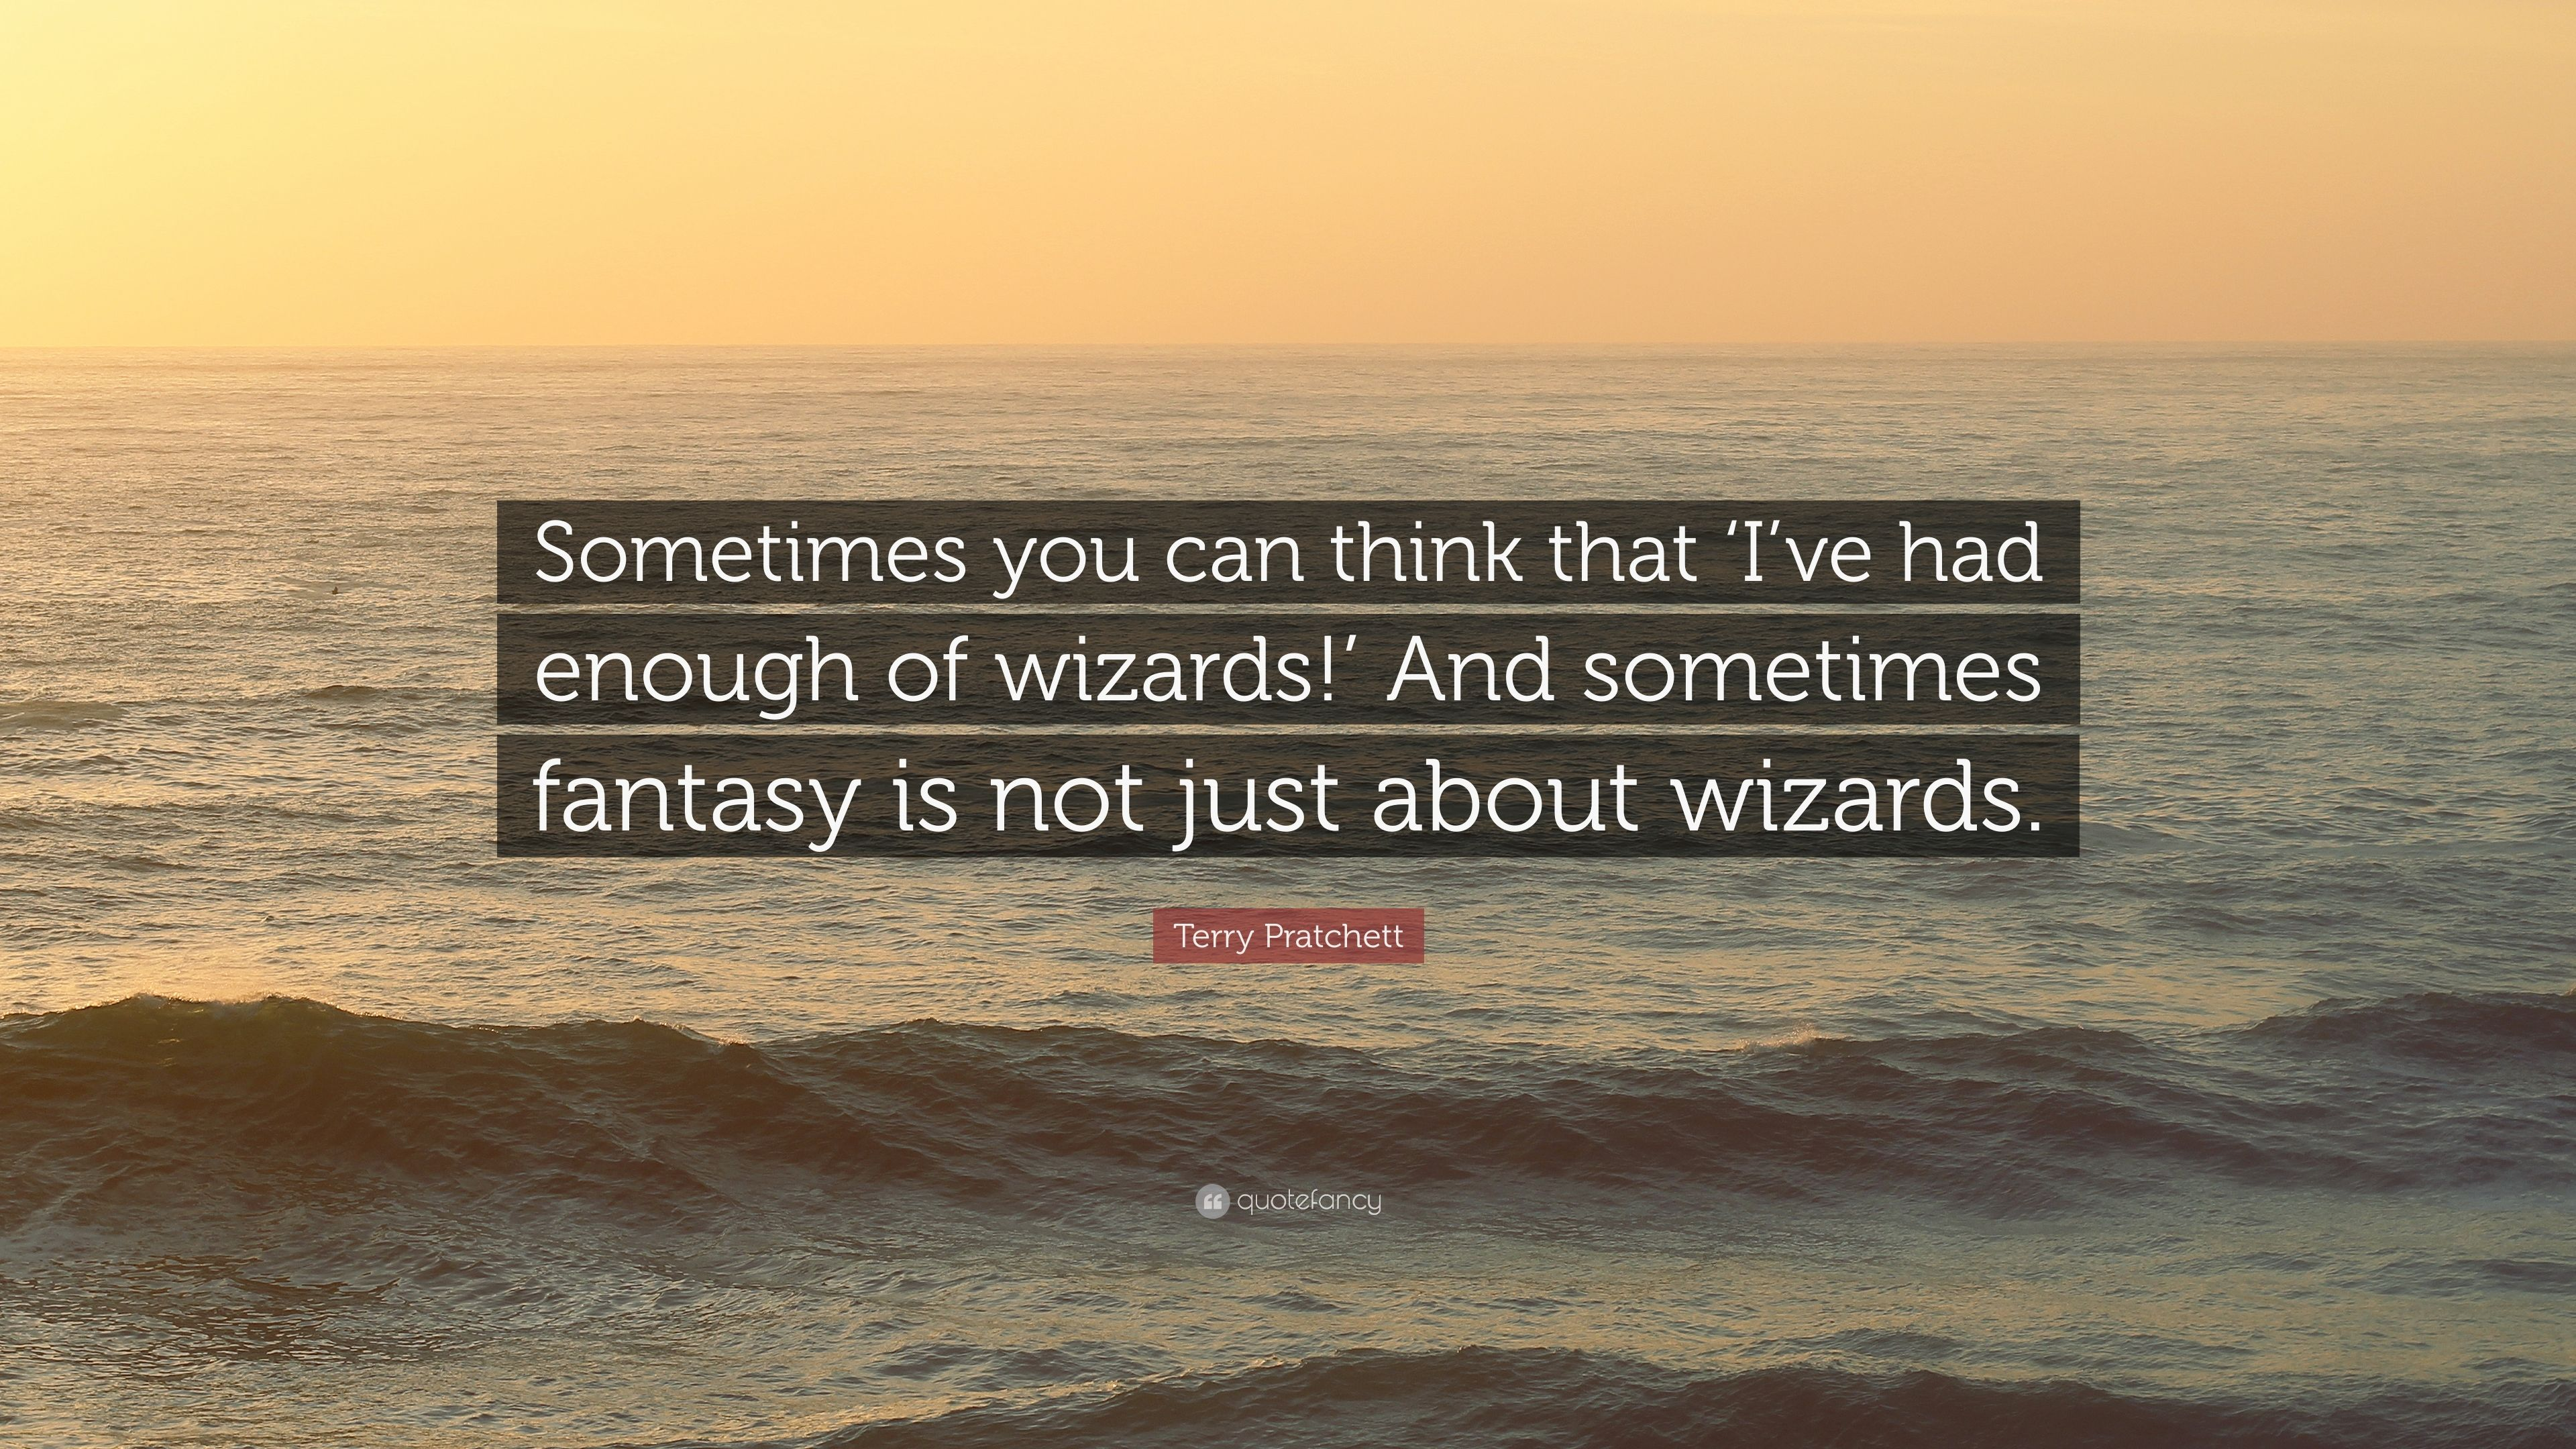 Terry Pratchett Quote Sometimes You Can Think That Ive Had